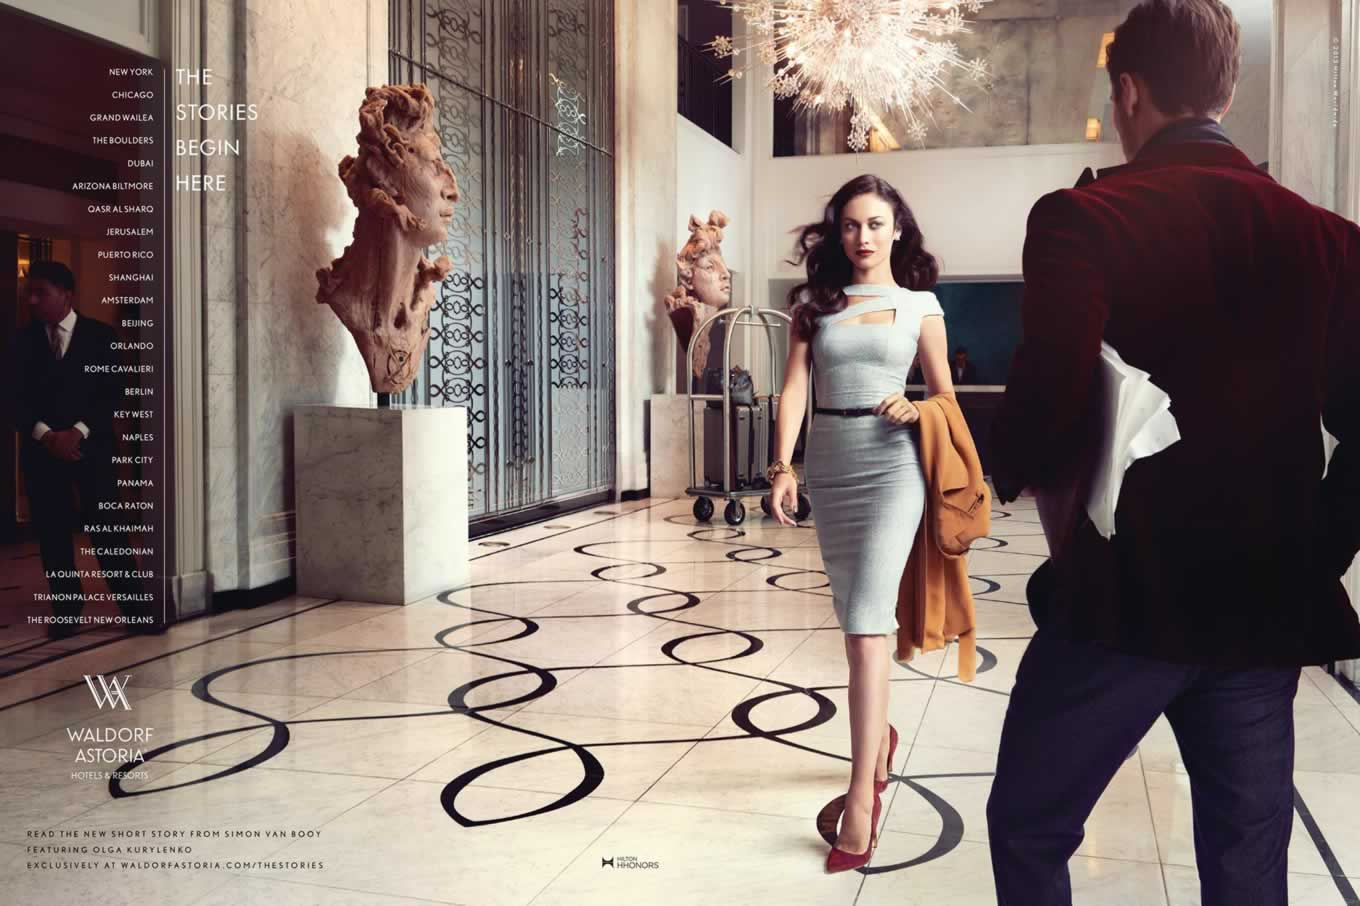 Print Advertising of The Stories Begin Here Campaign by Waldorf Astoria